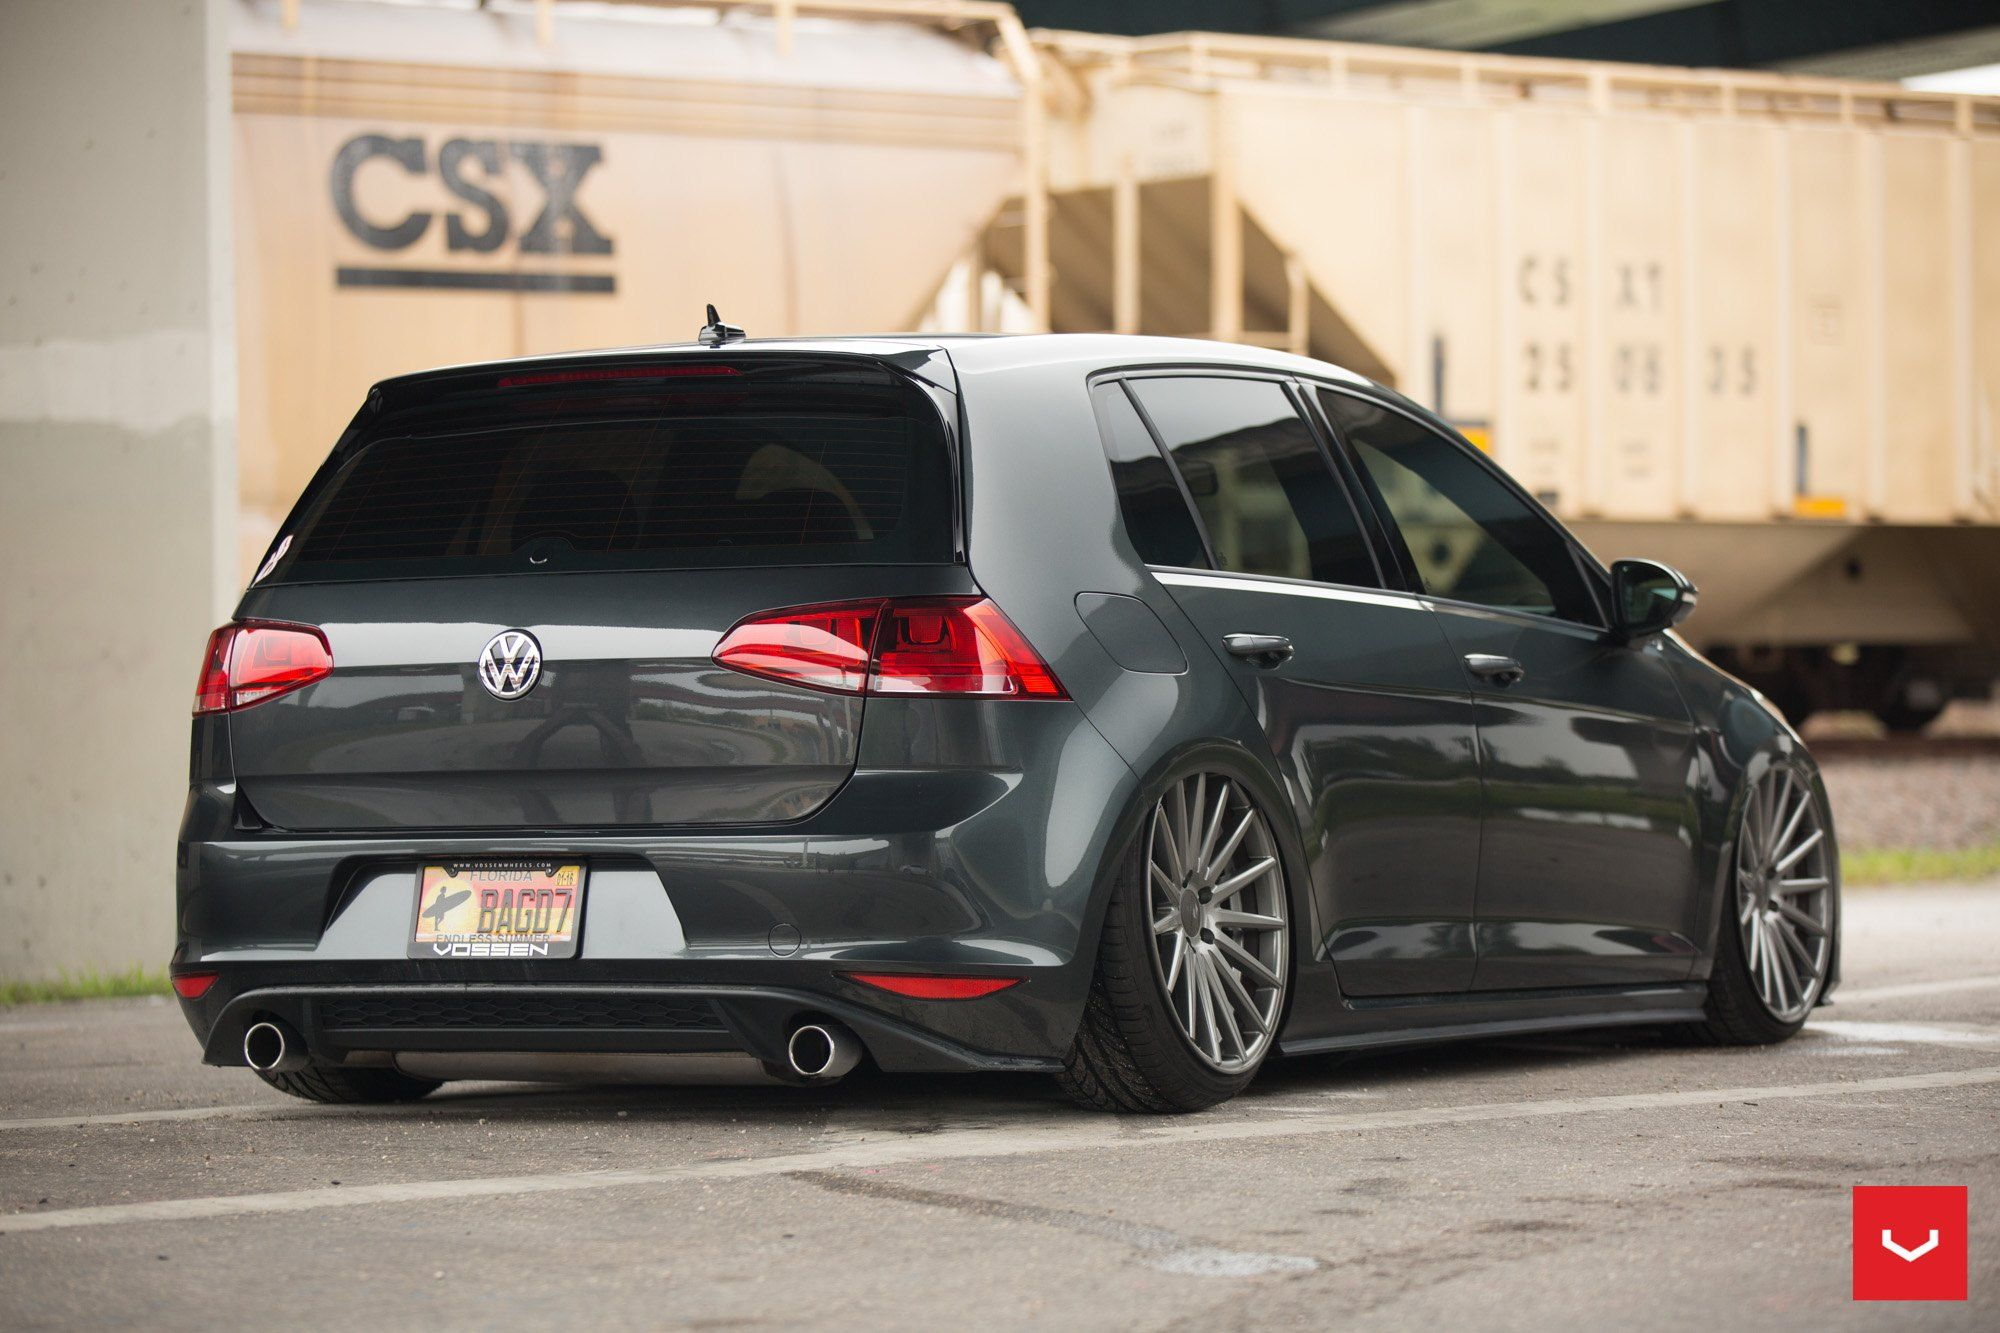 Slammed Beauty Black Vw Golf Gti On Custom Rims